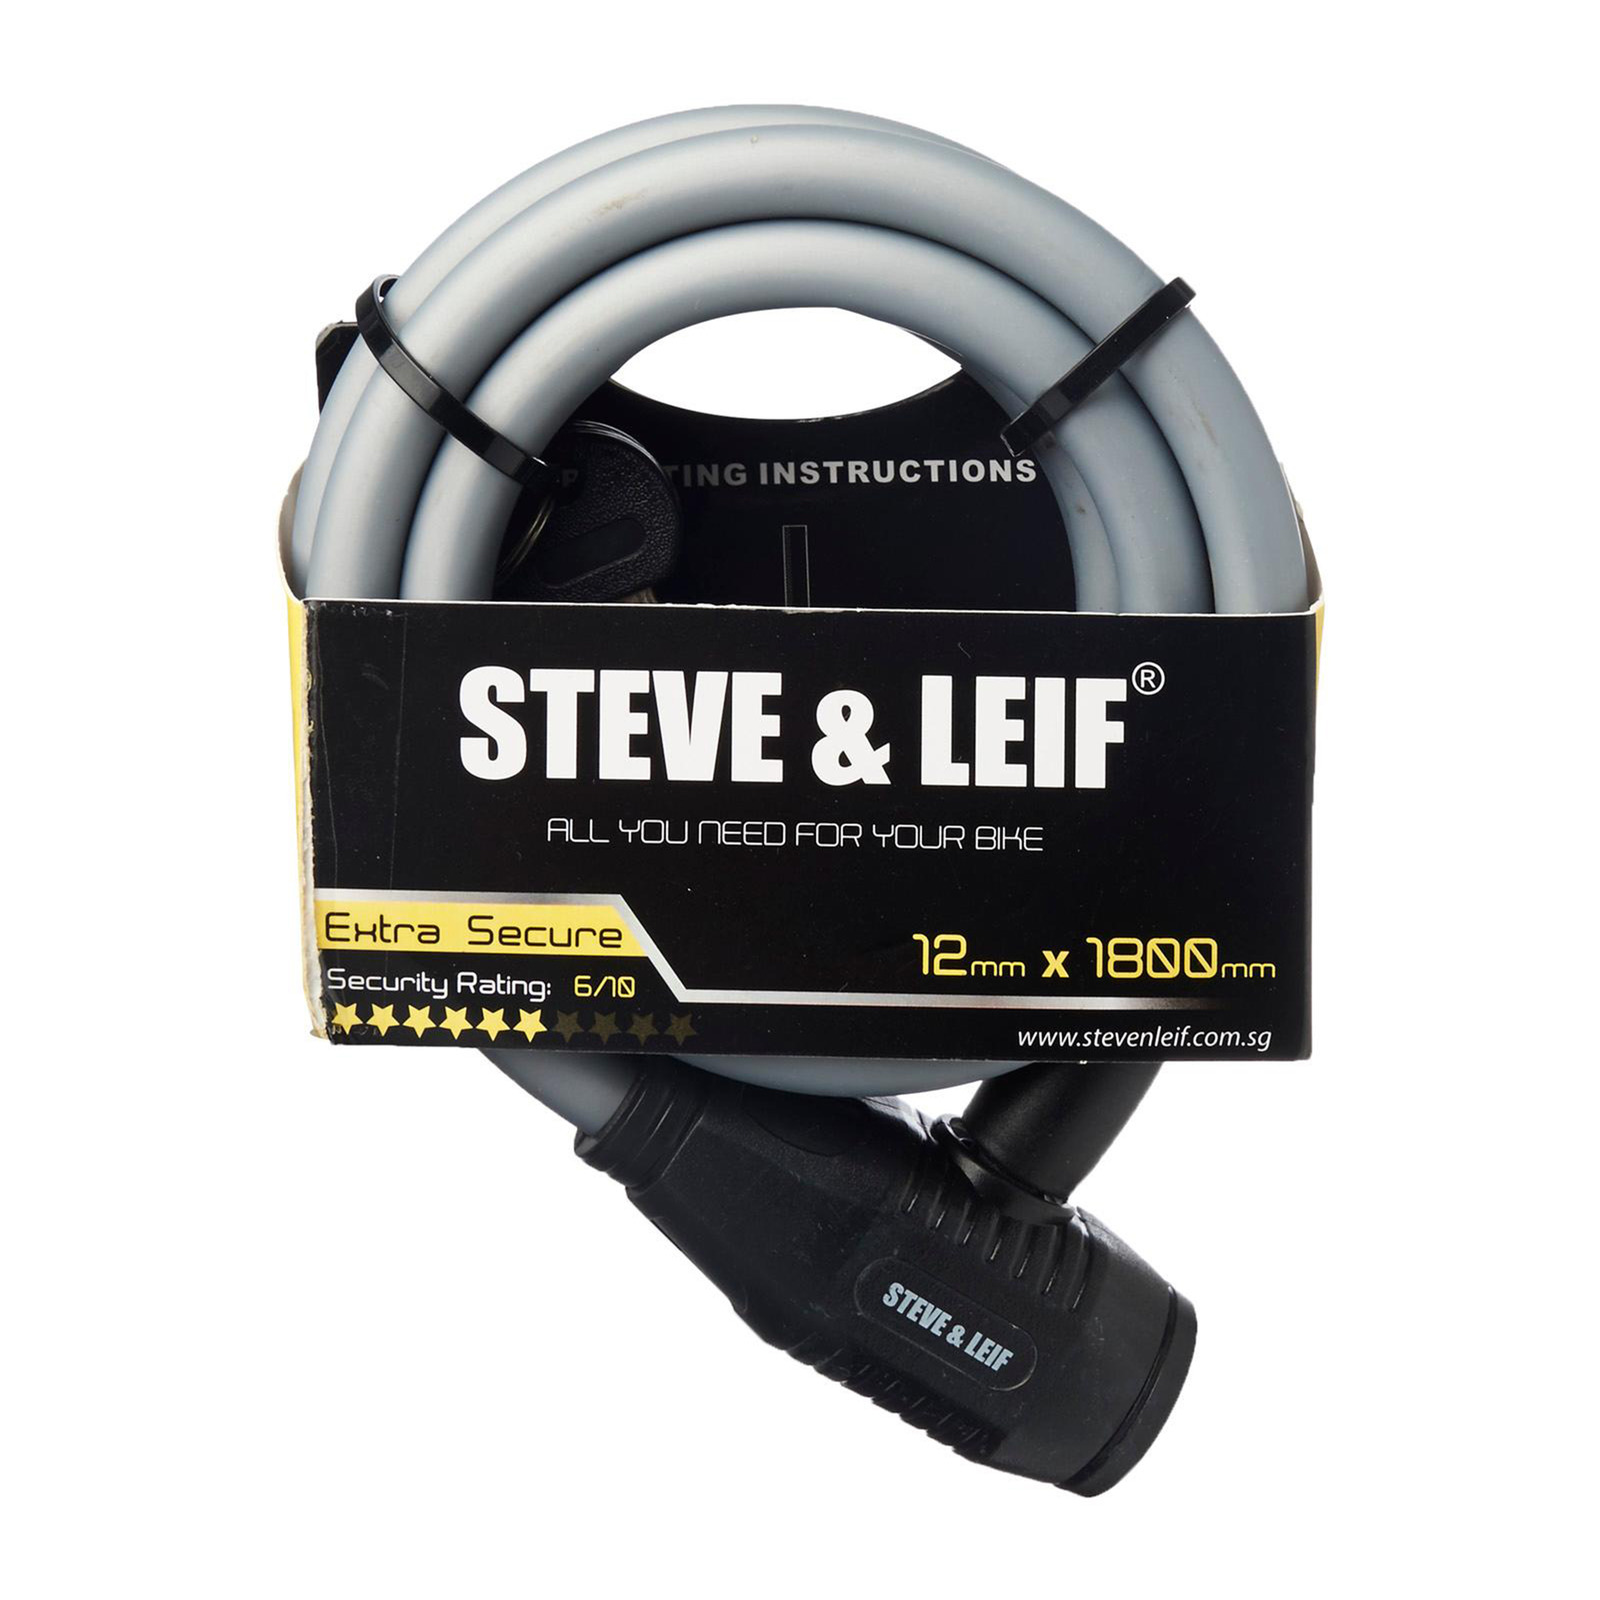 Steve & Leif Bicycle Key Lock With Bracket (12mm x 1800mm)